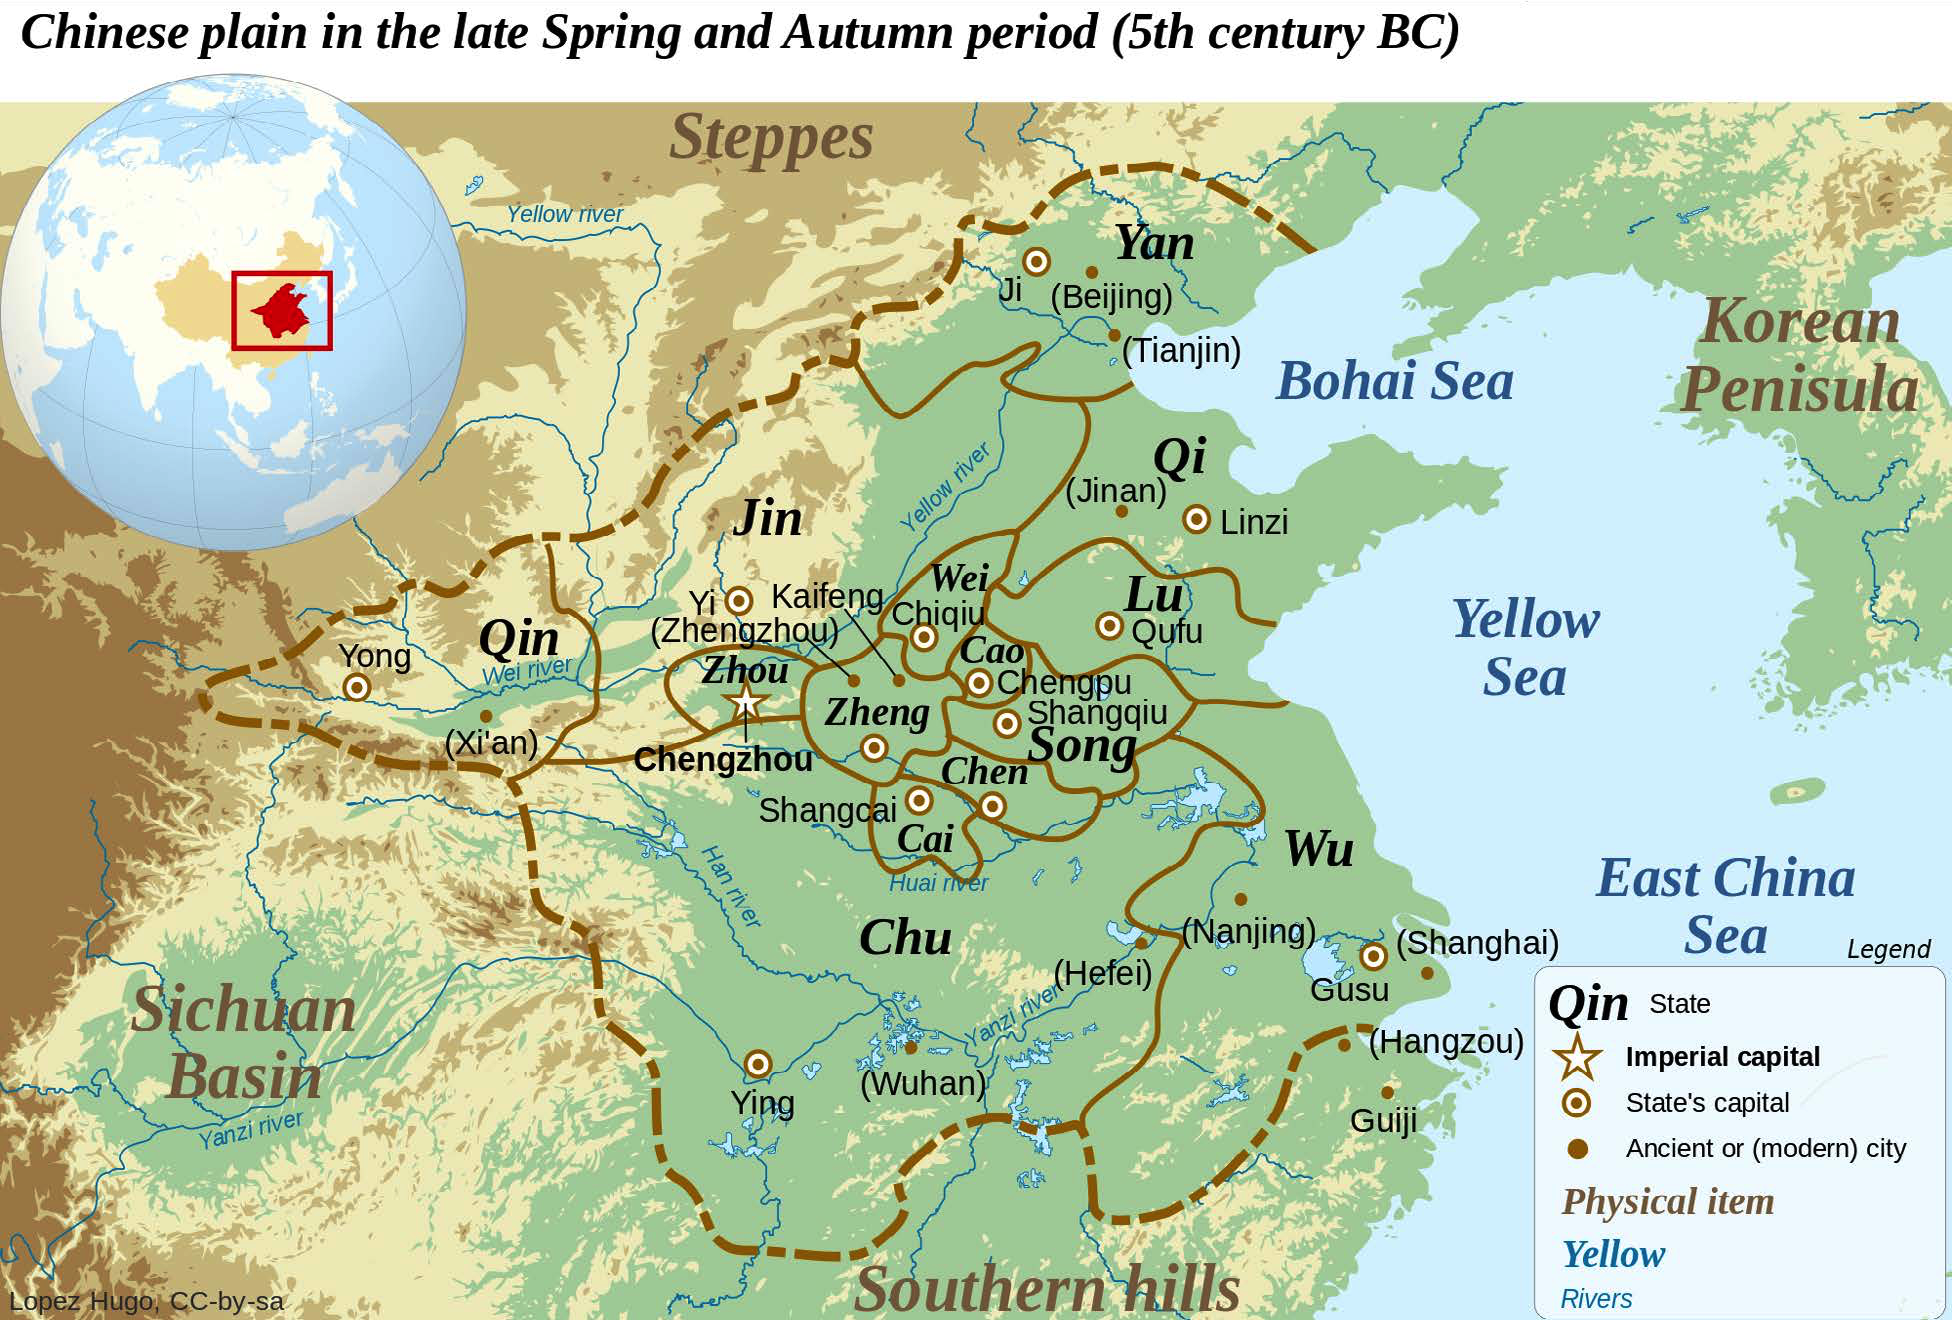 "Eastern Zhou States (fifth century, BCE) | Map of the Eastern Zhou states as they looked during the&lt;br /&gt;&lt;br /&gt;<br /> fifth century BCE. The Zhou kingdom itself had relocated farther east, with its capital at Chengzhou. The map also highlights the state of Qin. This rising power to the west would eventually conquer all of China and establish an empire | Author: User ""Yug"" 